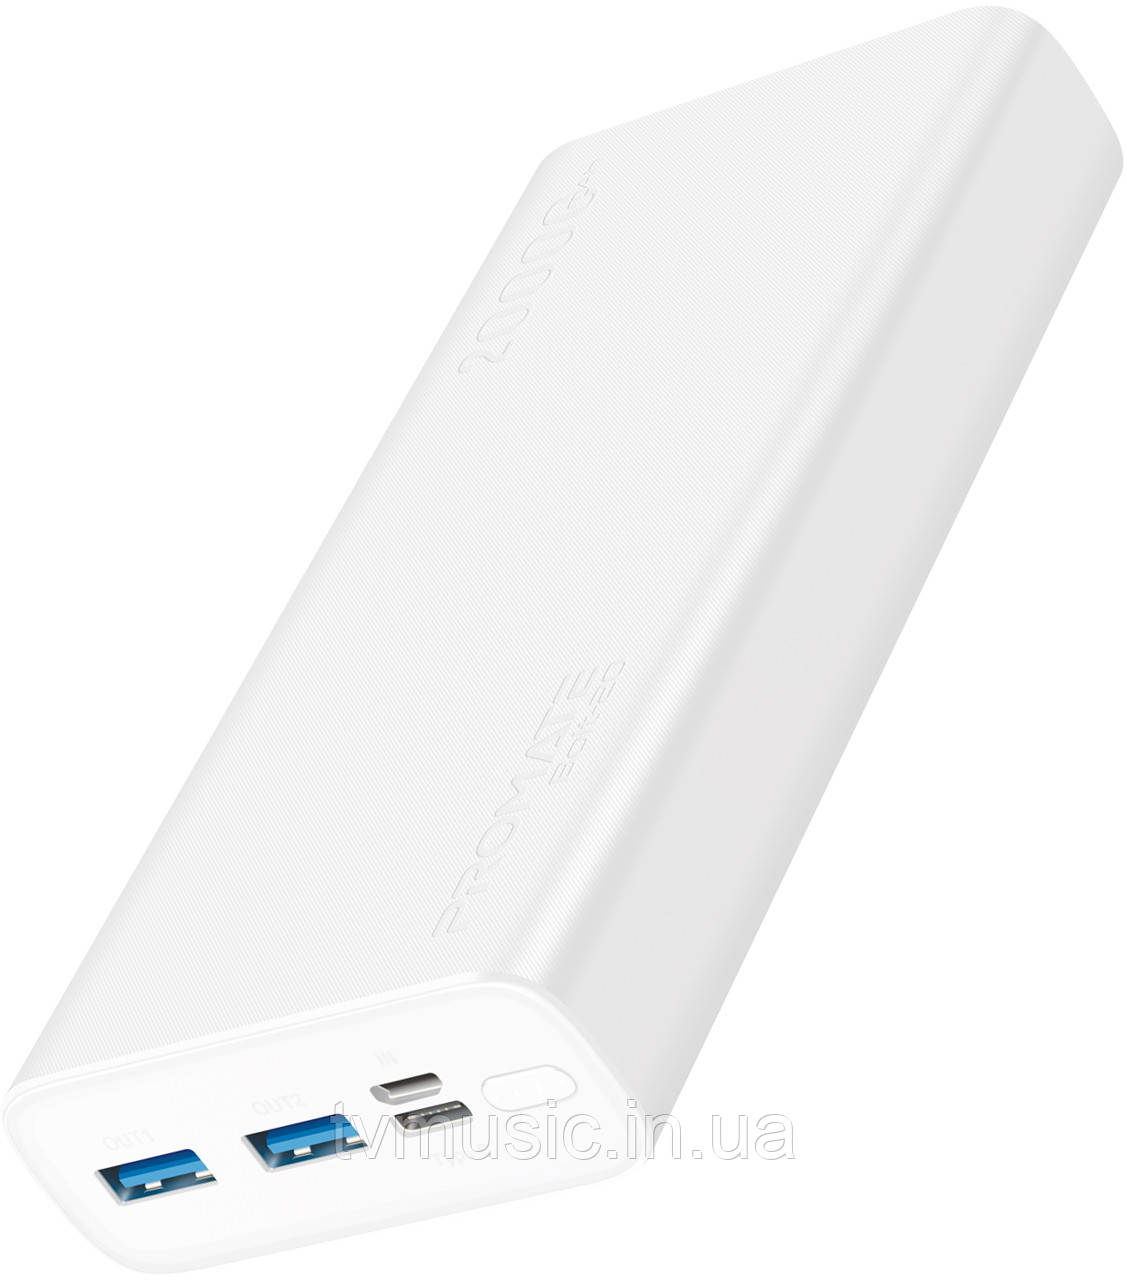 Повербанк Promate Bolt-20 20000 mAh White